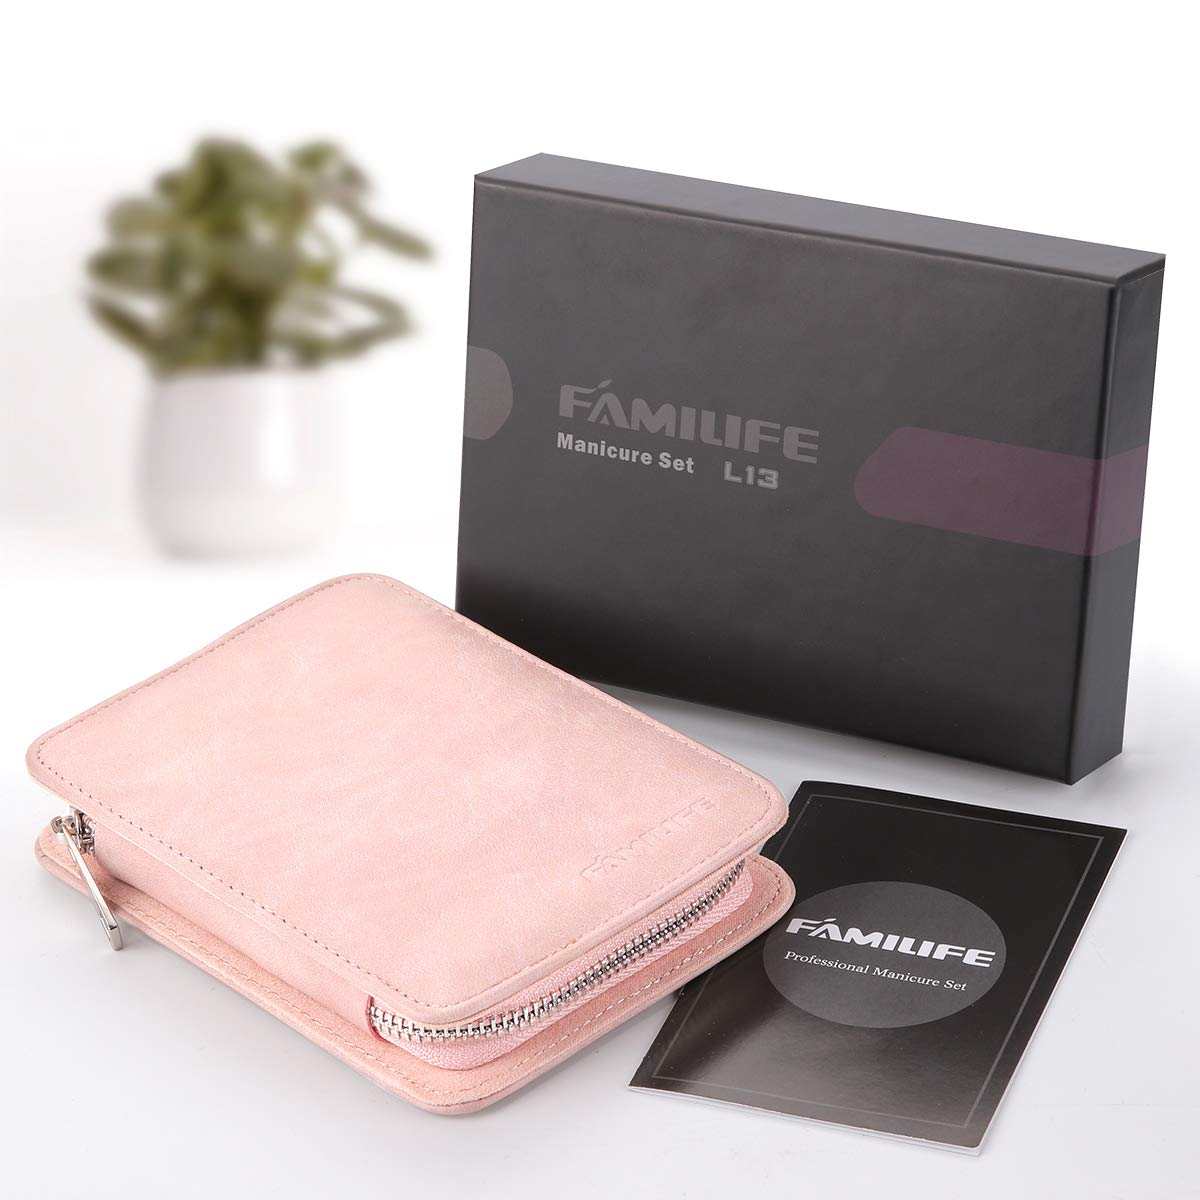 FAMILIFE Manicure Set, 8 in 1 Professional L13 Manicure Kit Nail Clipper Set Stainless Steel Pedicure Tools Kit Portable Grooming Kit with Pink Leather Travel Case for Women Girl : Beauty